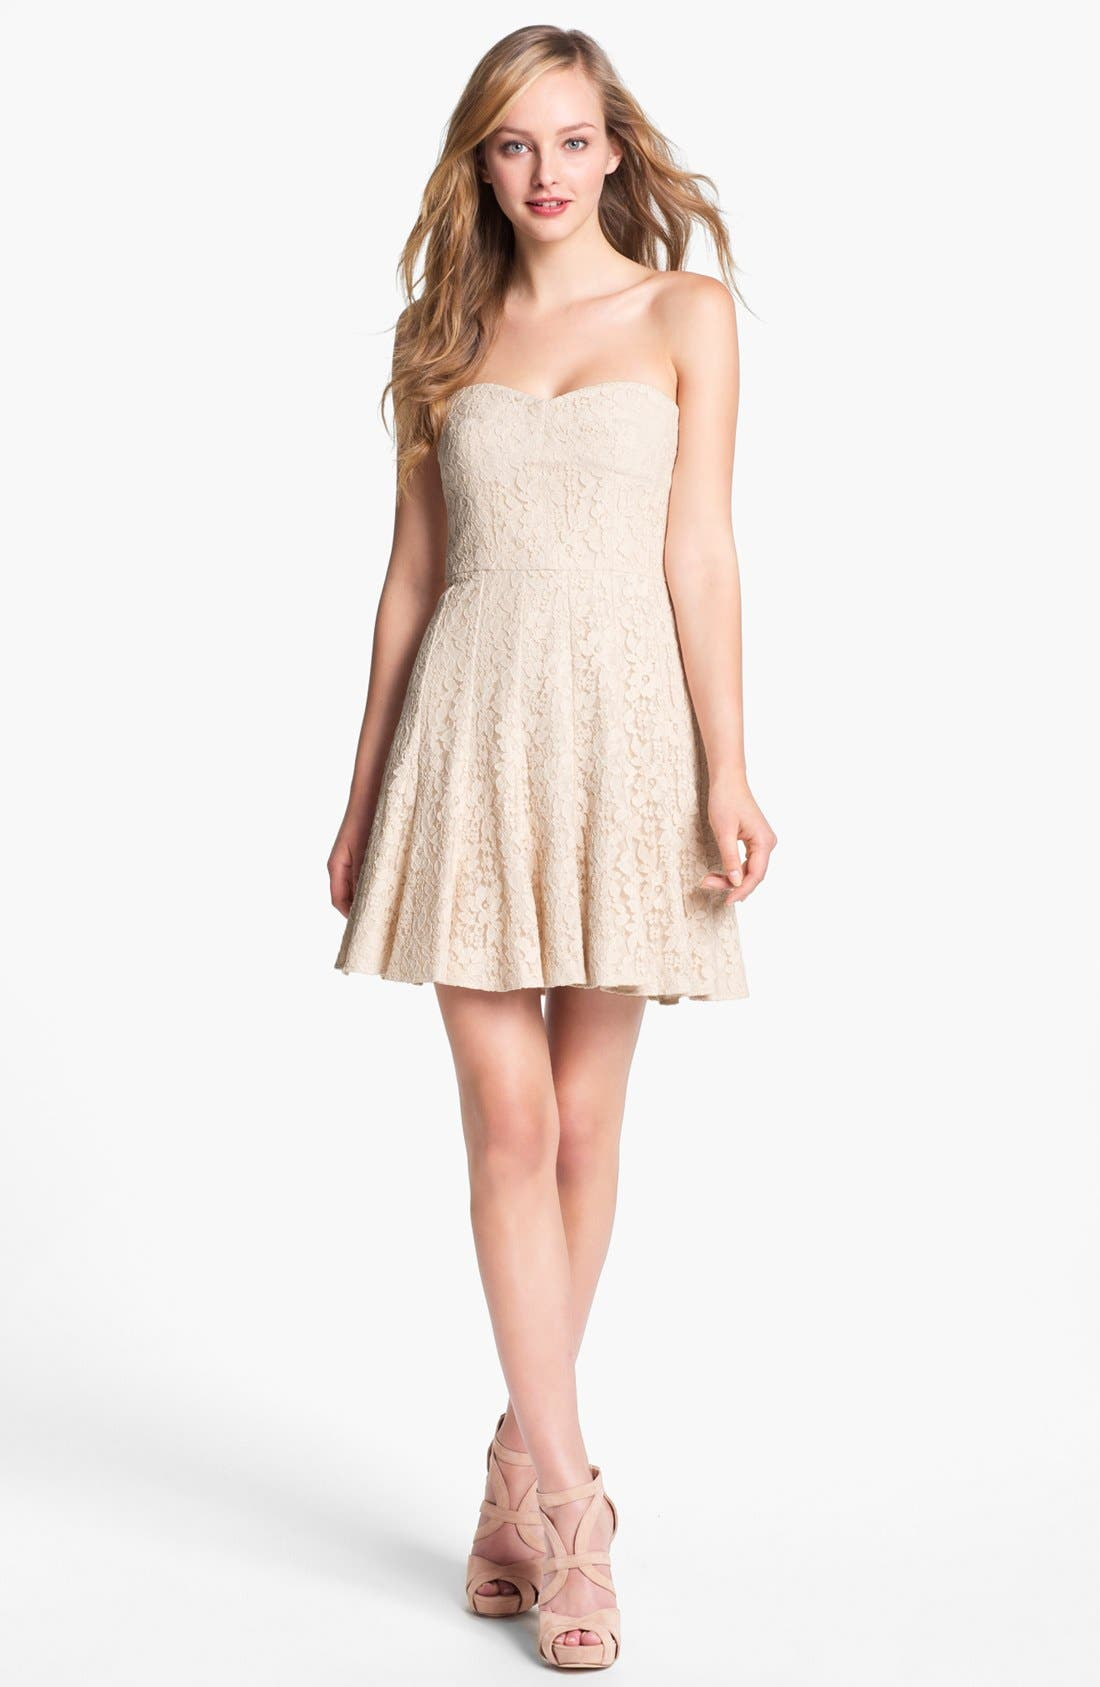 Main Image - BCBGMAXAZRIA Strapless Lace Fit & Flare Dress